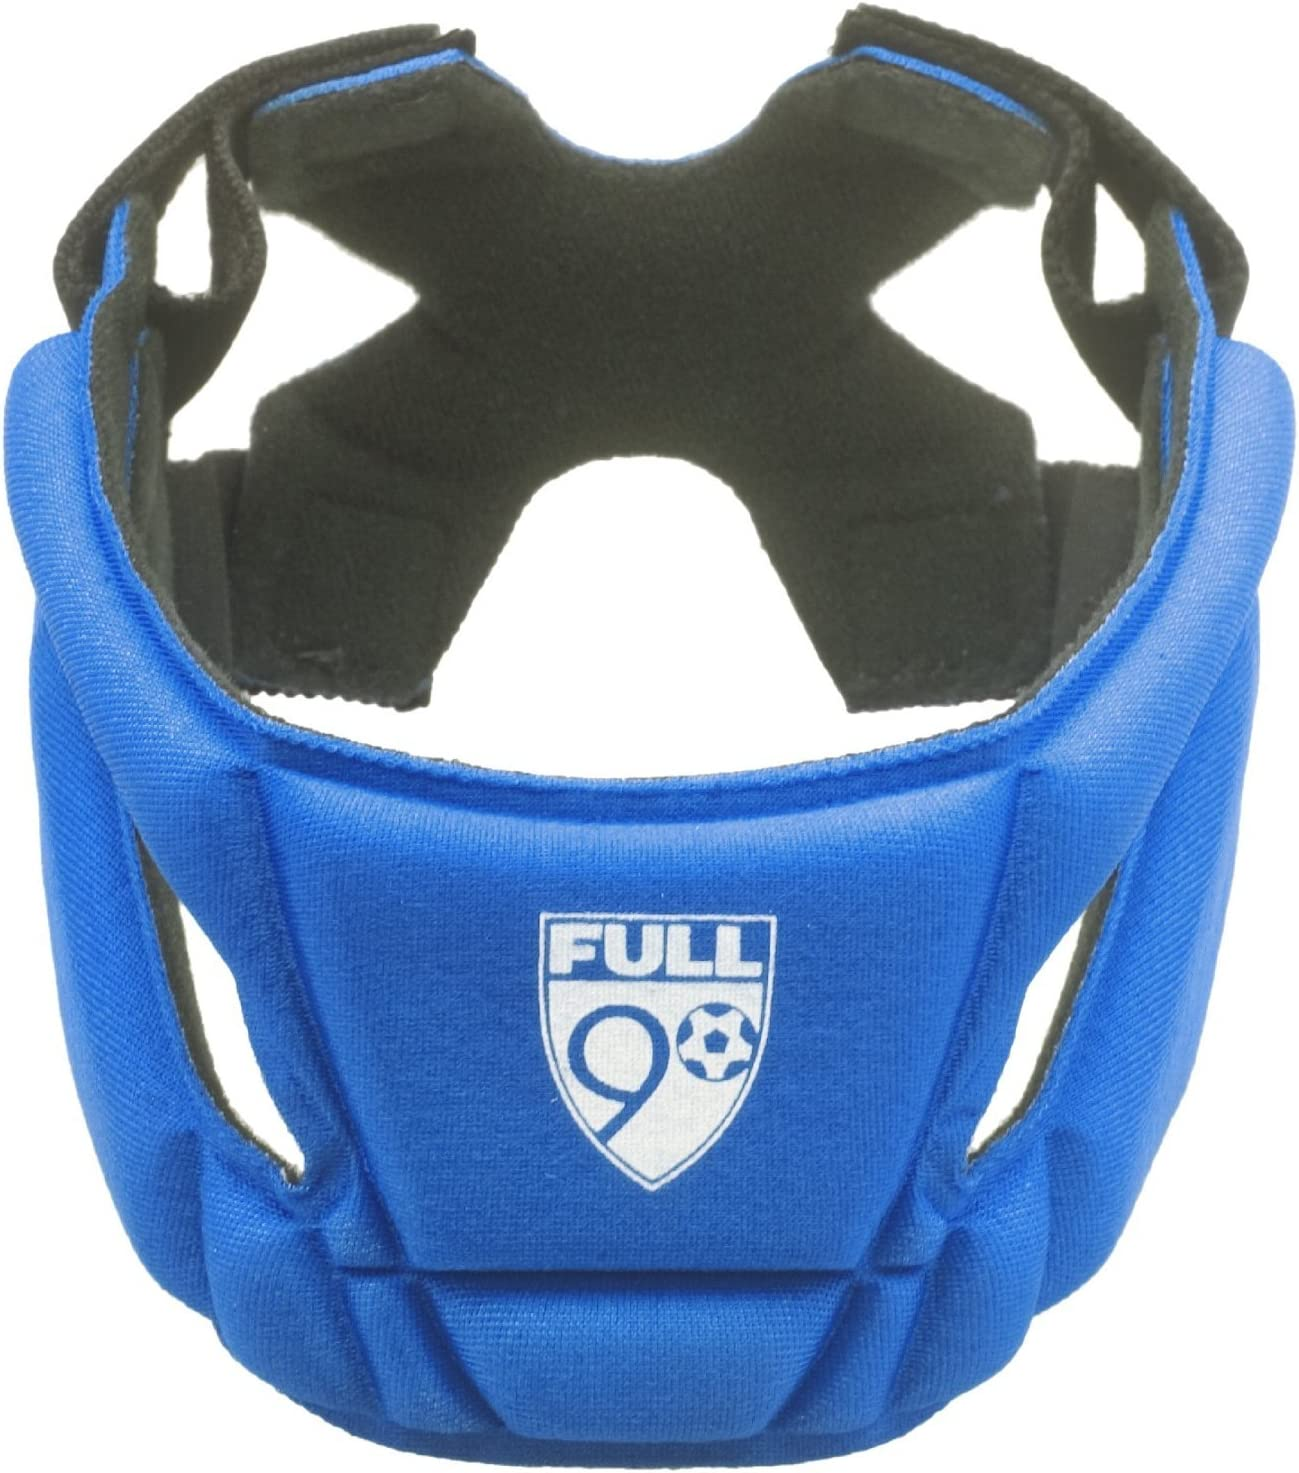 Sale Genuine Free Shipping Special Price Full90 Performance Soccer Select Headgear